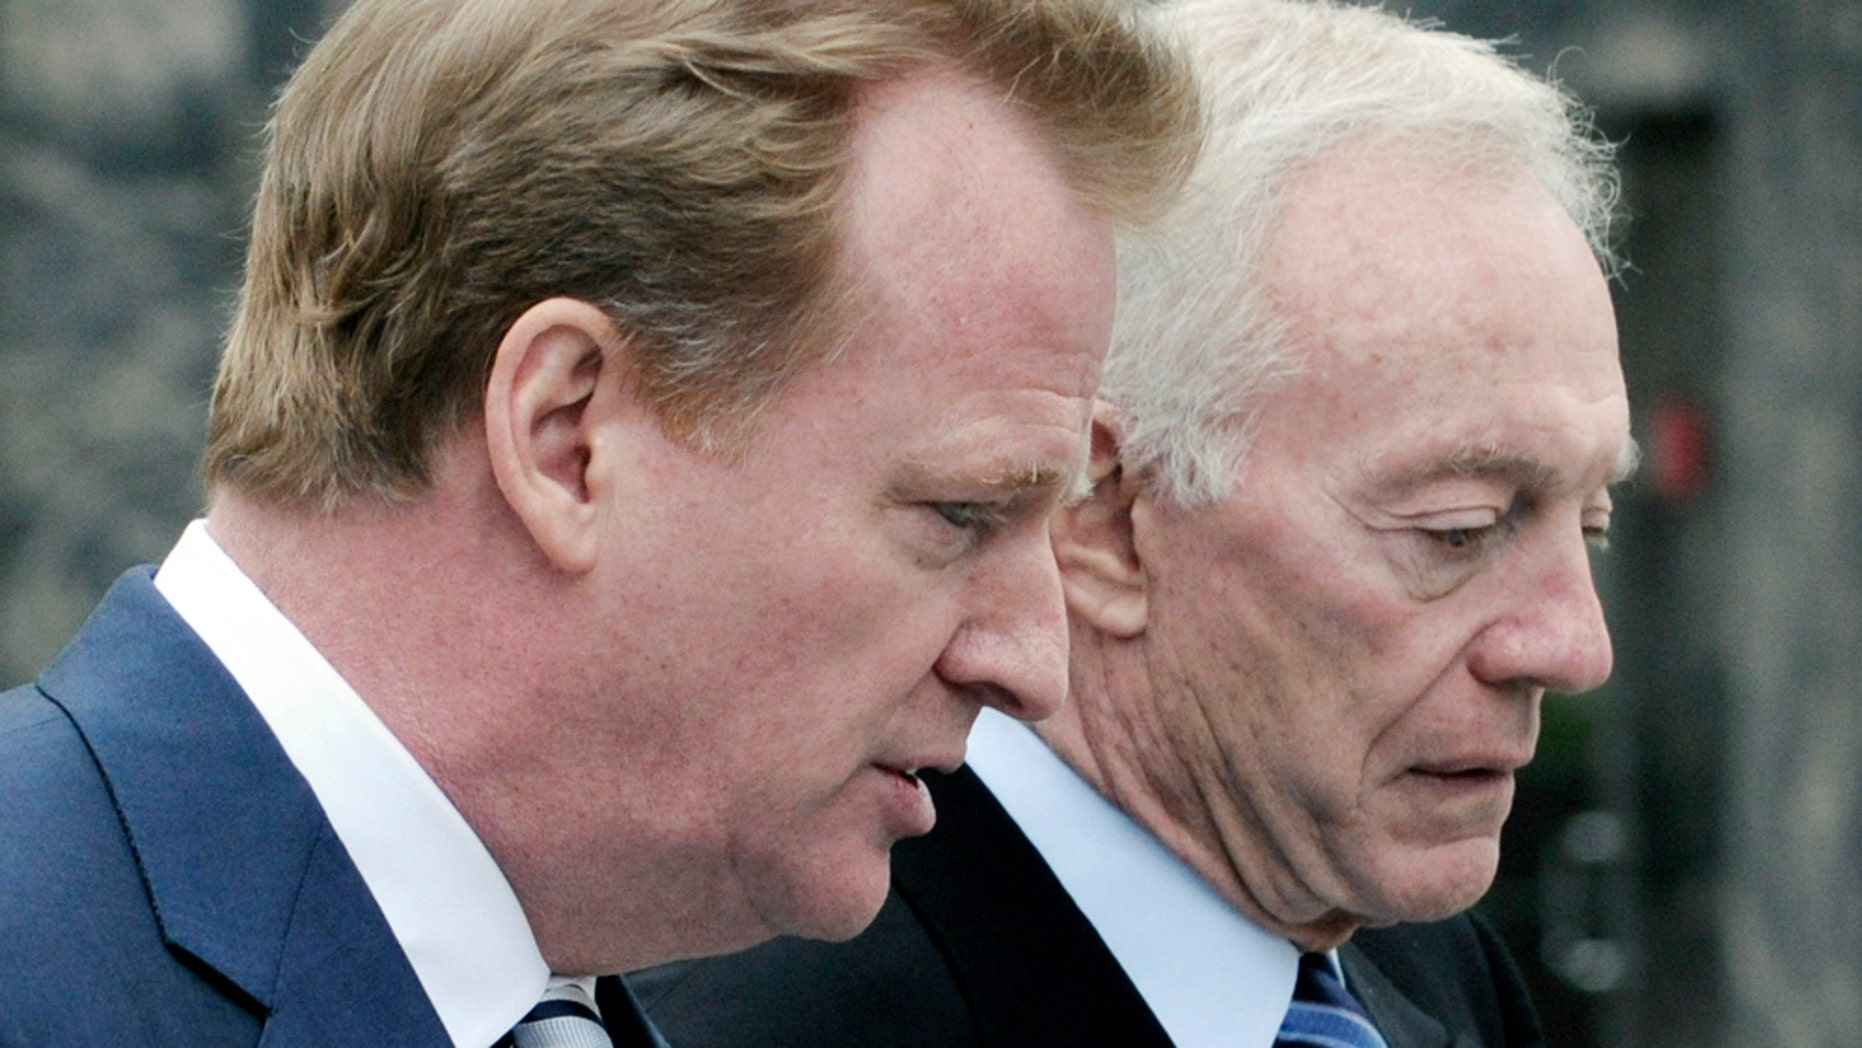 NFL Commissioner Roger Goodell, left, chats with Dallas Cowboys' owner Jerry Jones as they arrive at the federal courthouse Tuesday, April 19, 2011 in Minneapolis where the NFL and its locked-out football players continue court-ordered mediation.  (AP Photo/Jim Mone)